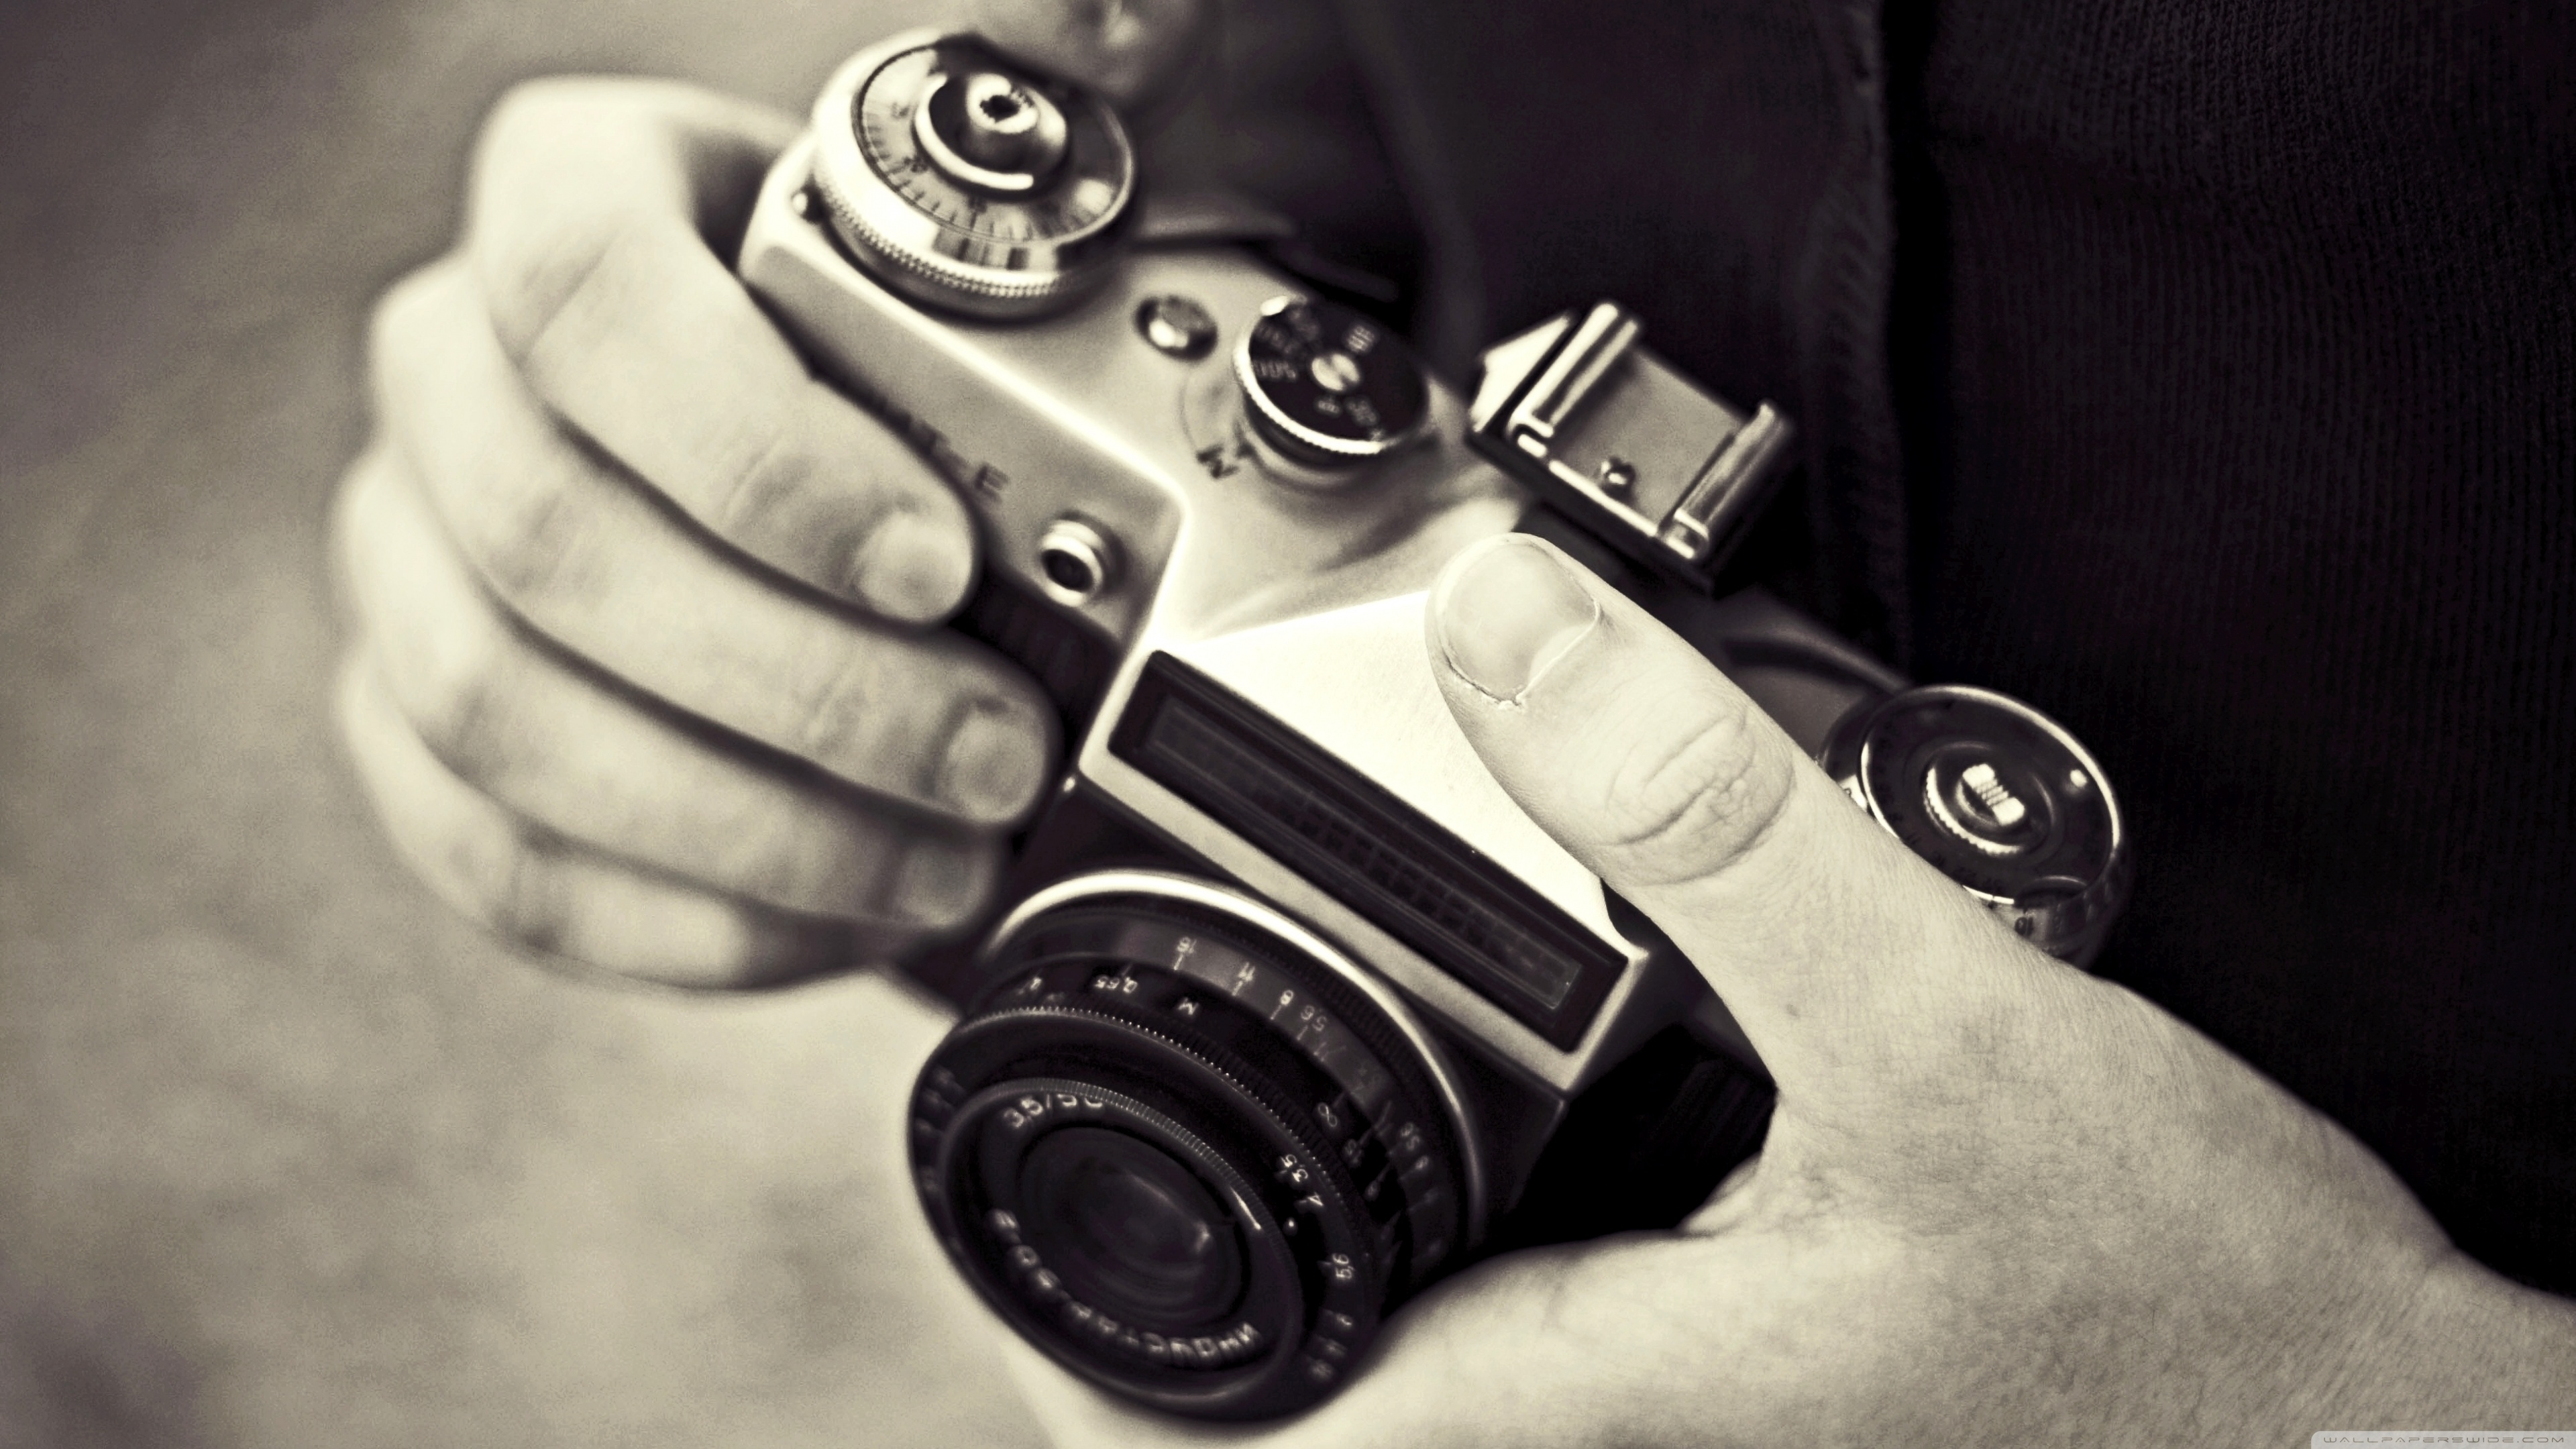 Download Dslr Camera HD Wallpapers Gallery